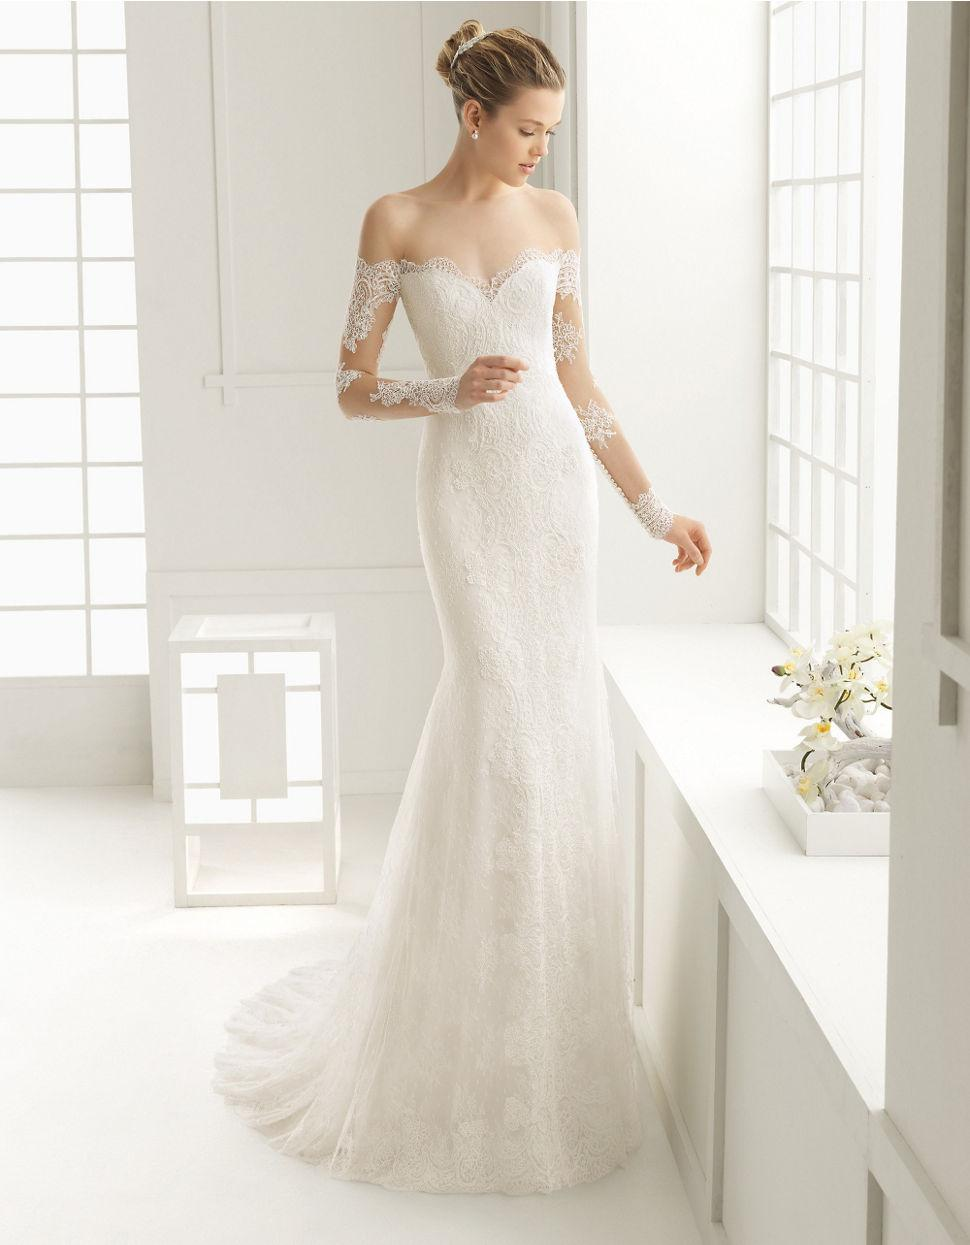 Sheath wedding dress with open shoulders